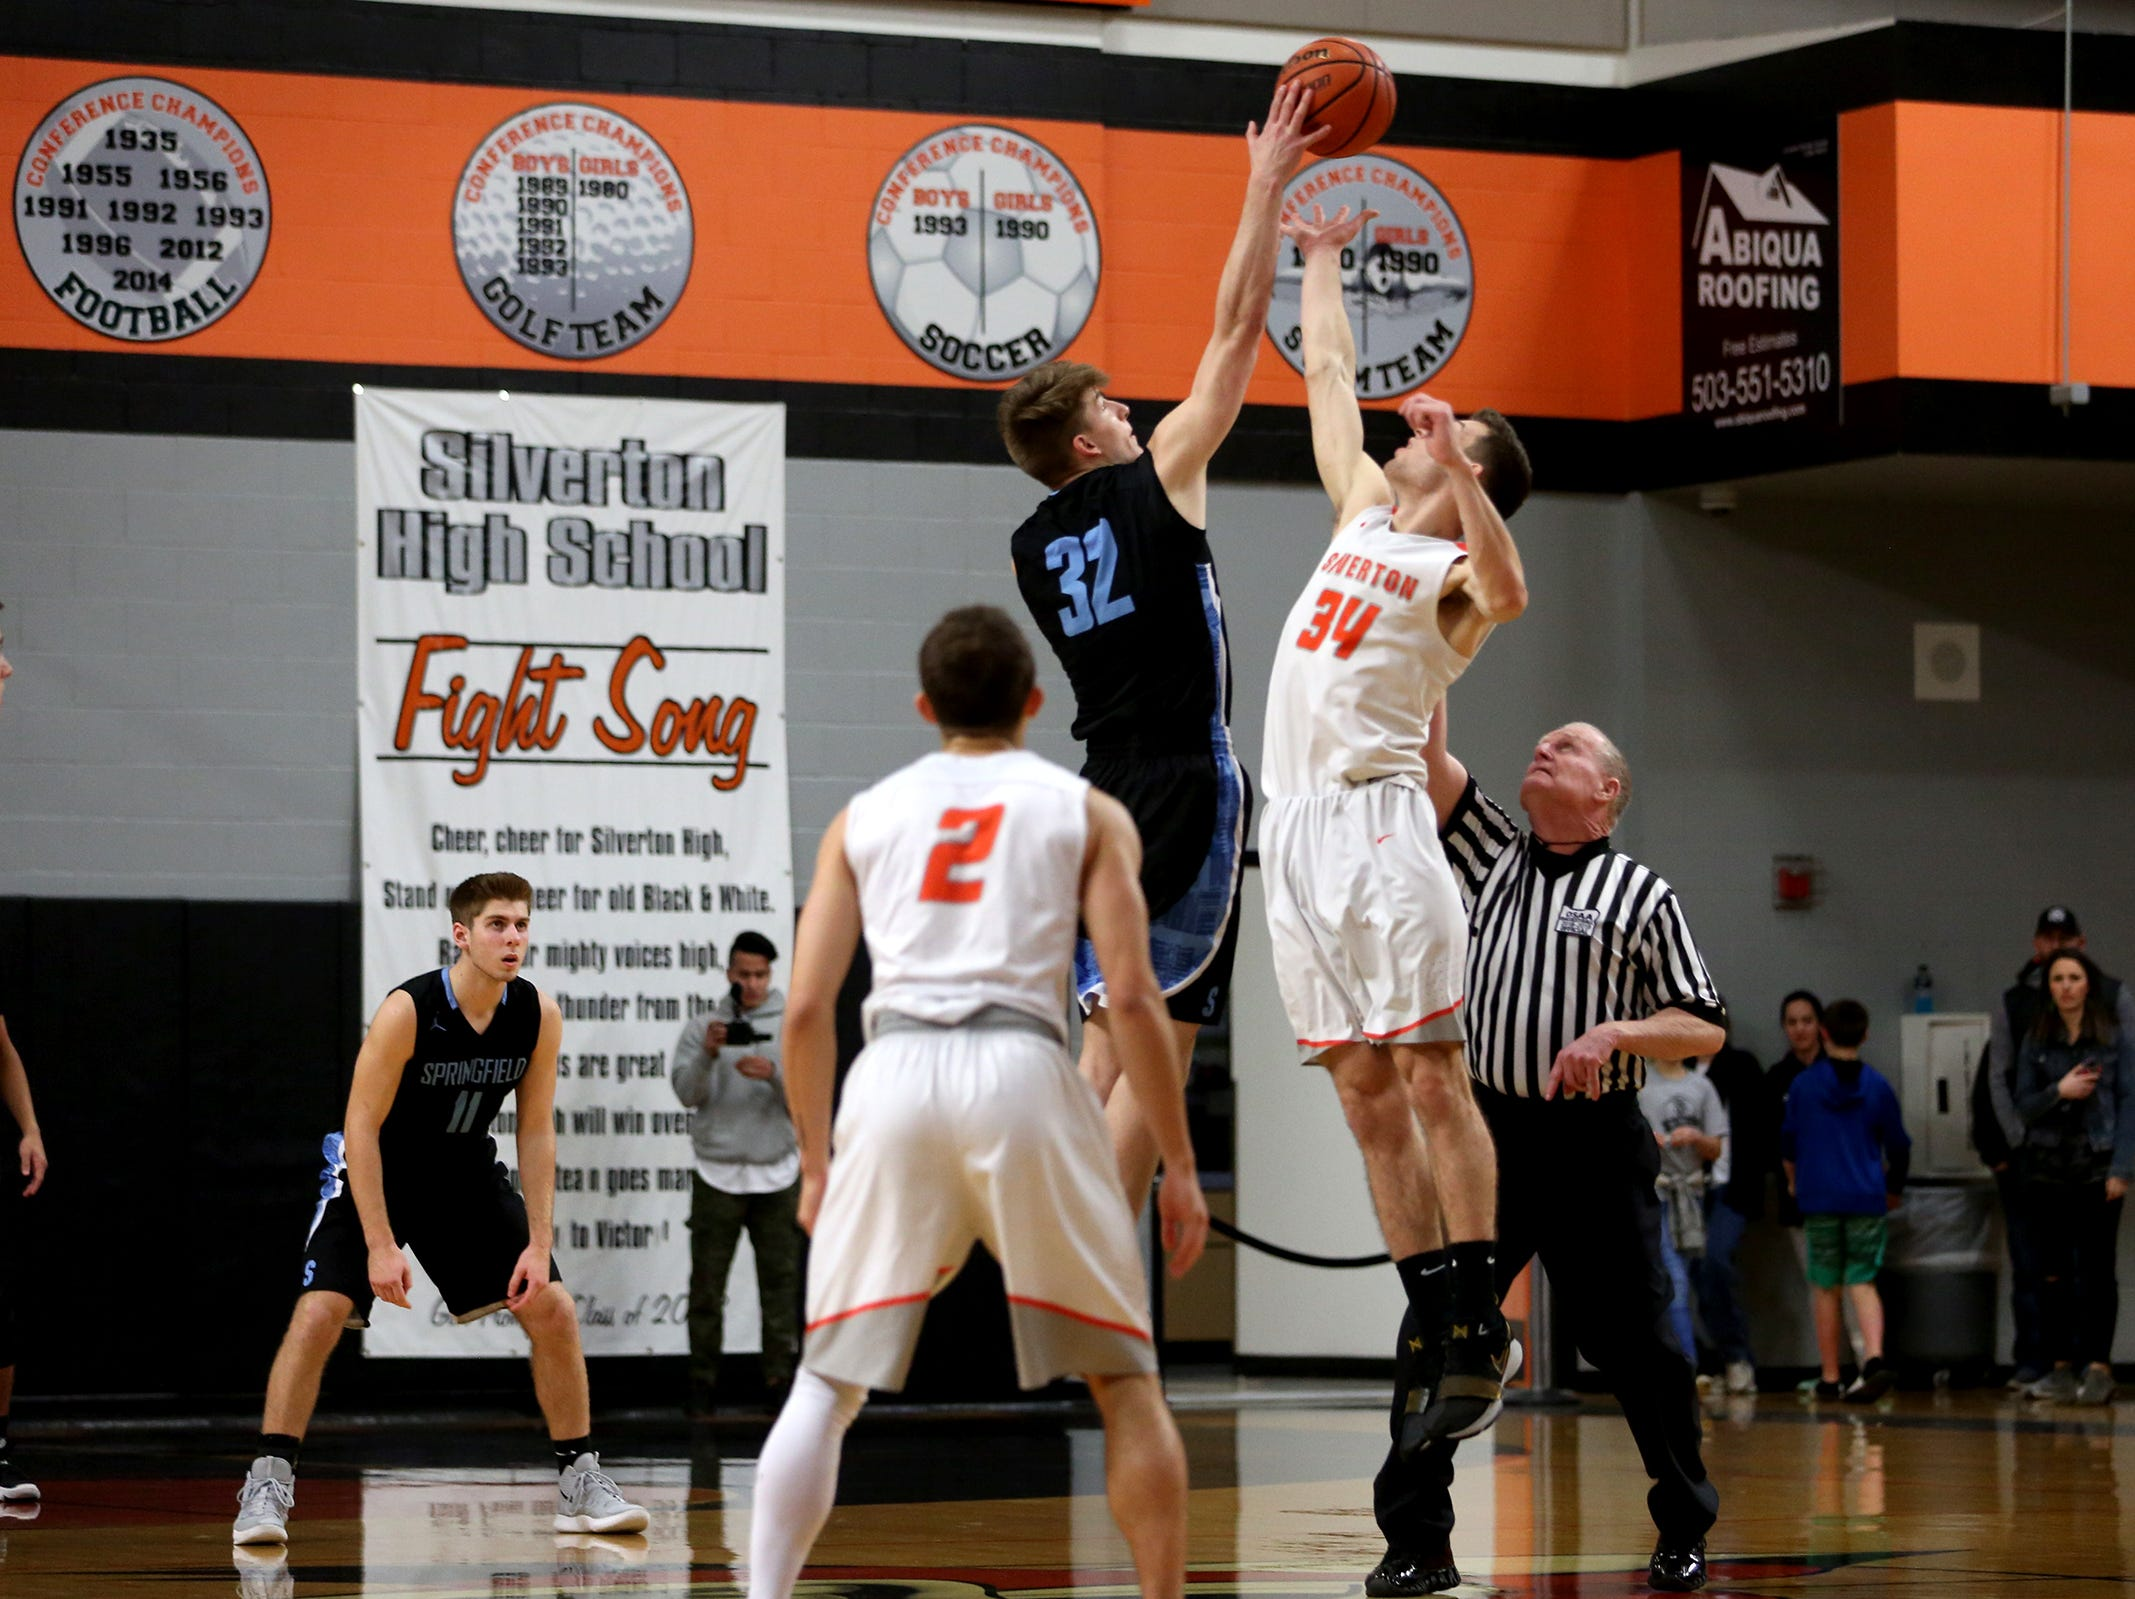 Silverton's Levi Nielsen (34) and Springfield's Zach Brown (32) go up at tipoff during the Silverton vs. Springfield boys basketball OSAA state playoffs game at Silverton High School in Silverton on Saturday, March 2, 2019.